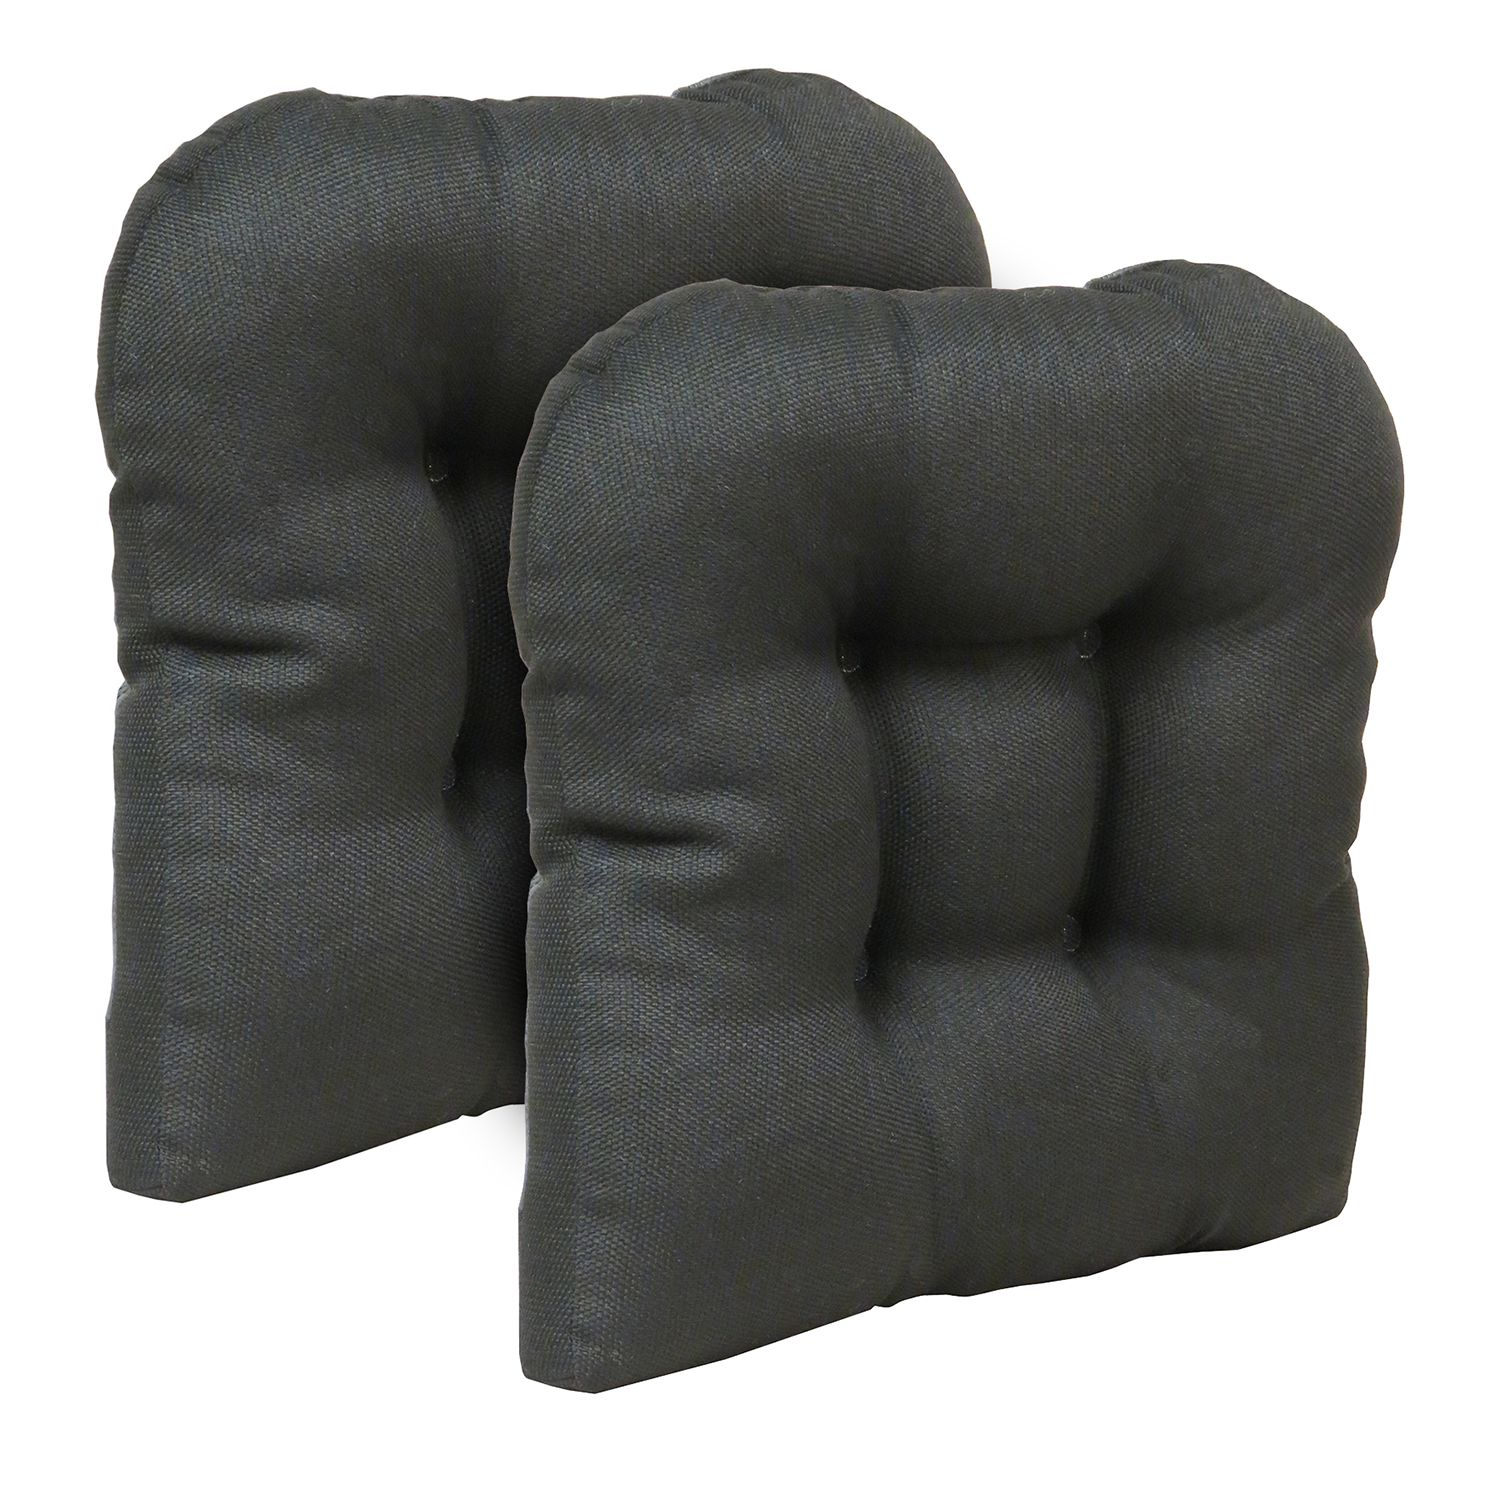 Gentil The Gripper Stoked Tufted Chair Pad 2 Pk.